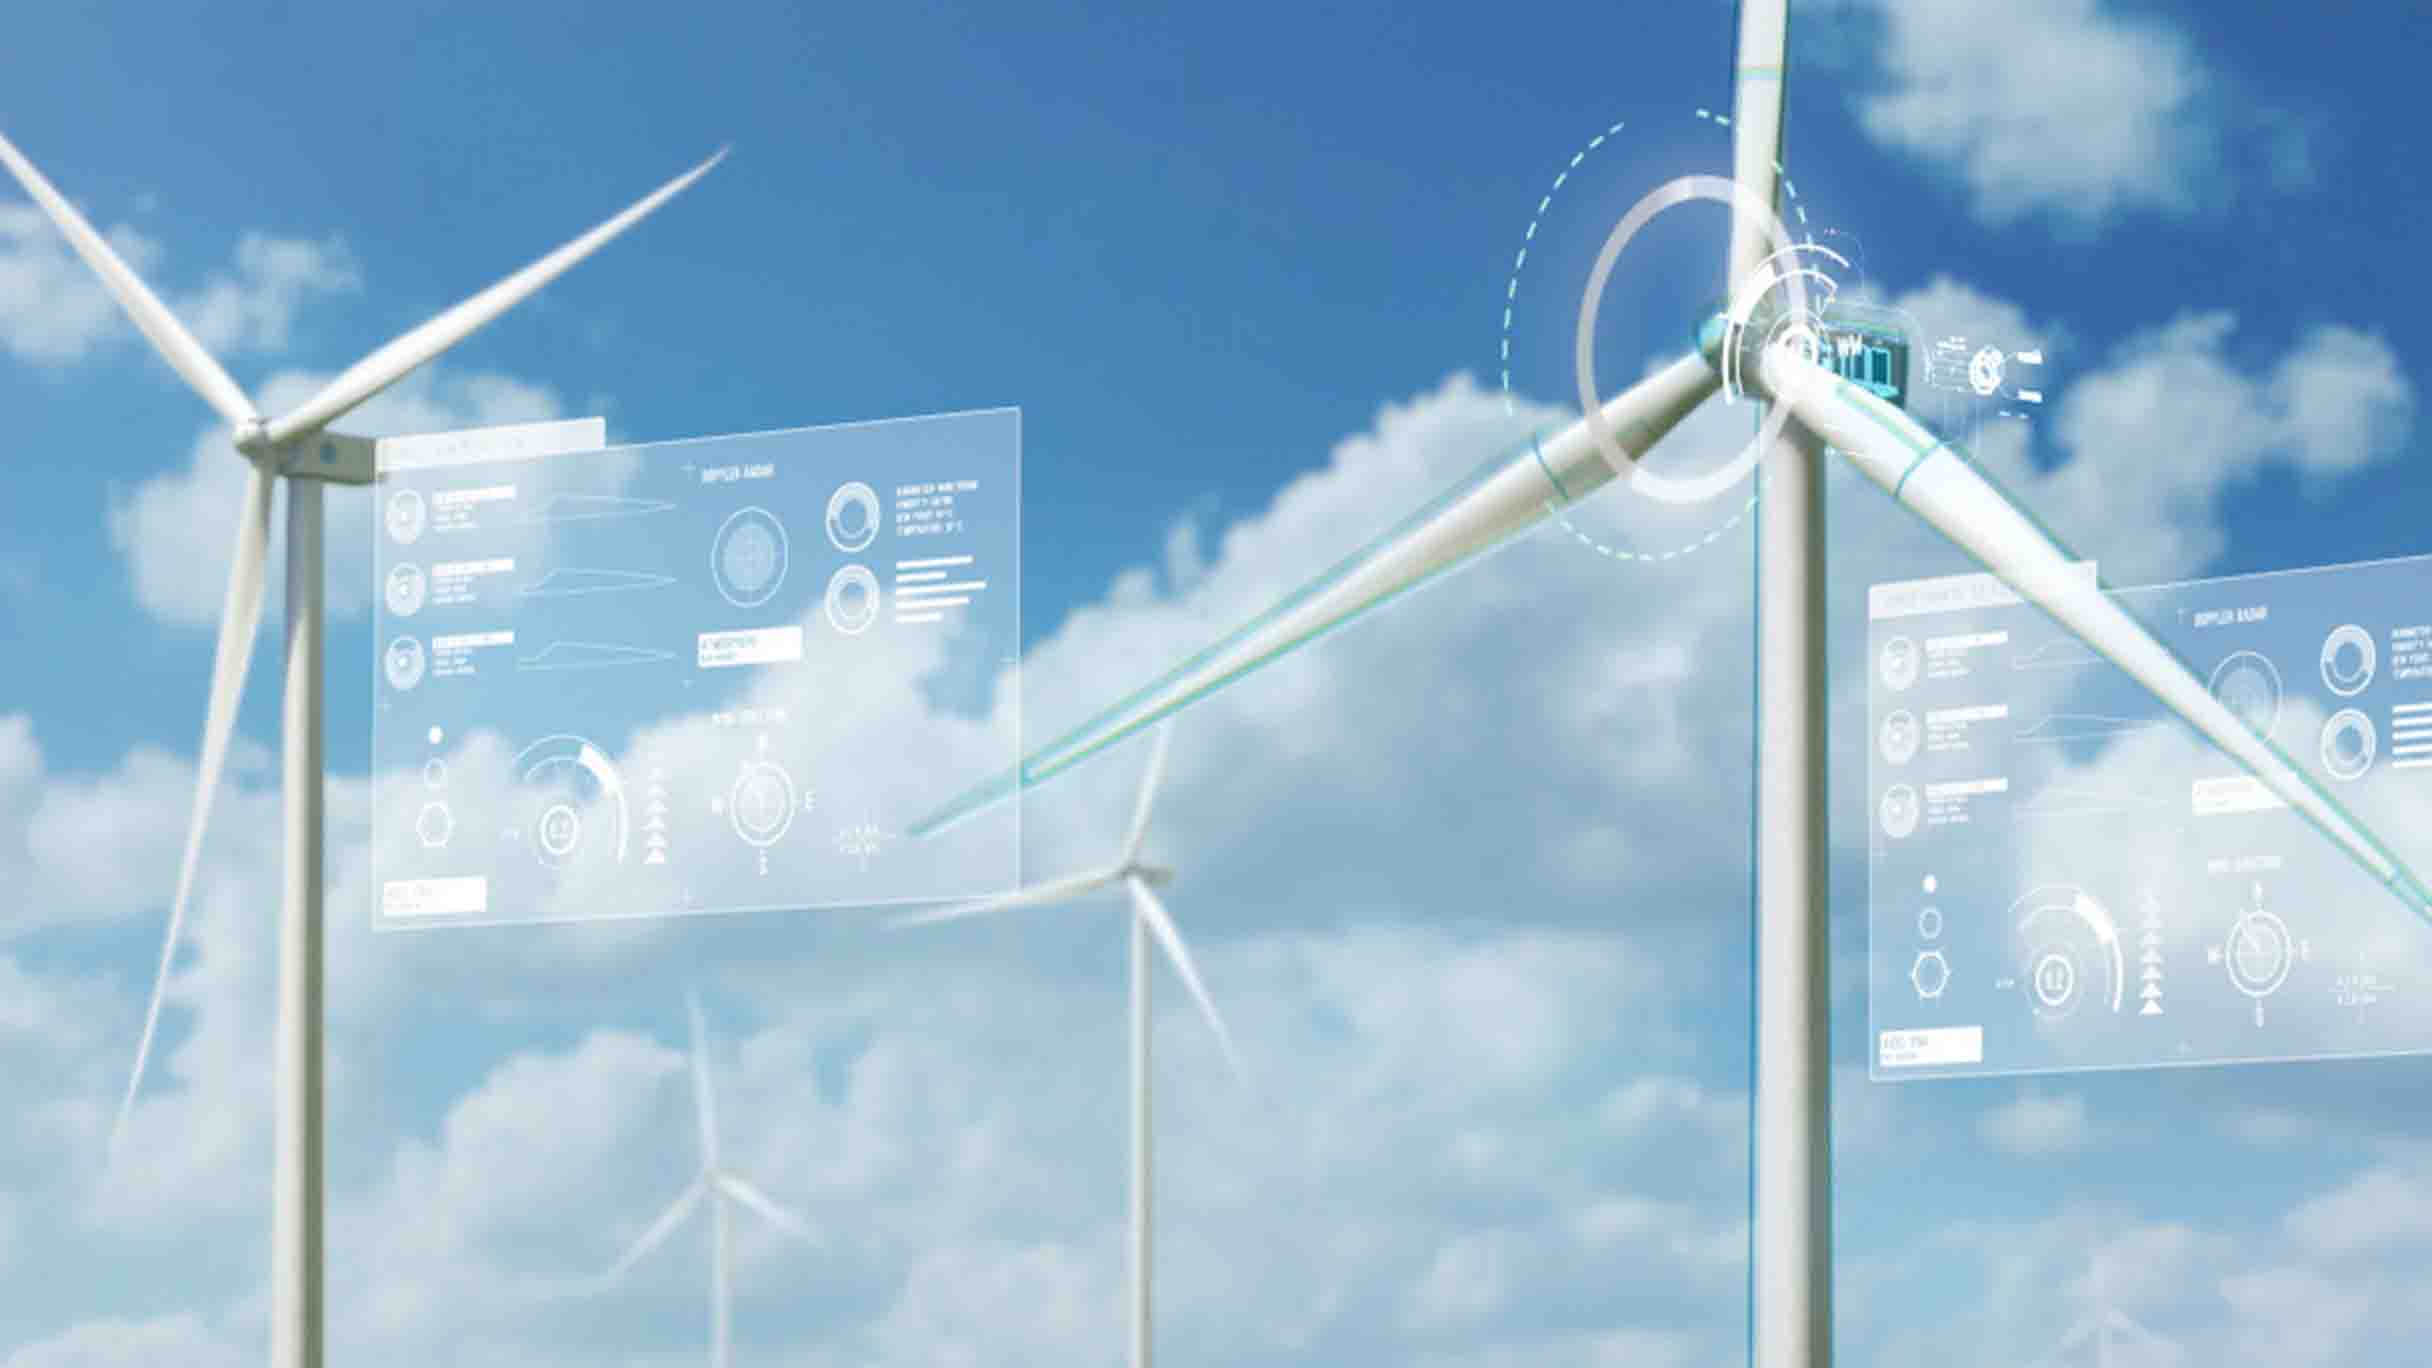 GE Digital software provide predictive analytics to maintain uptime of wind farms